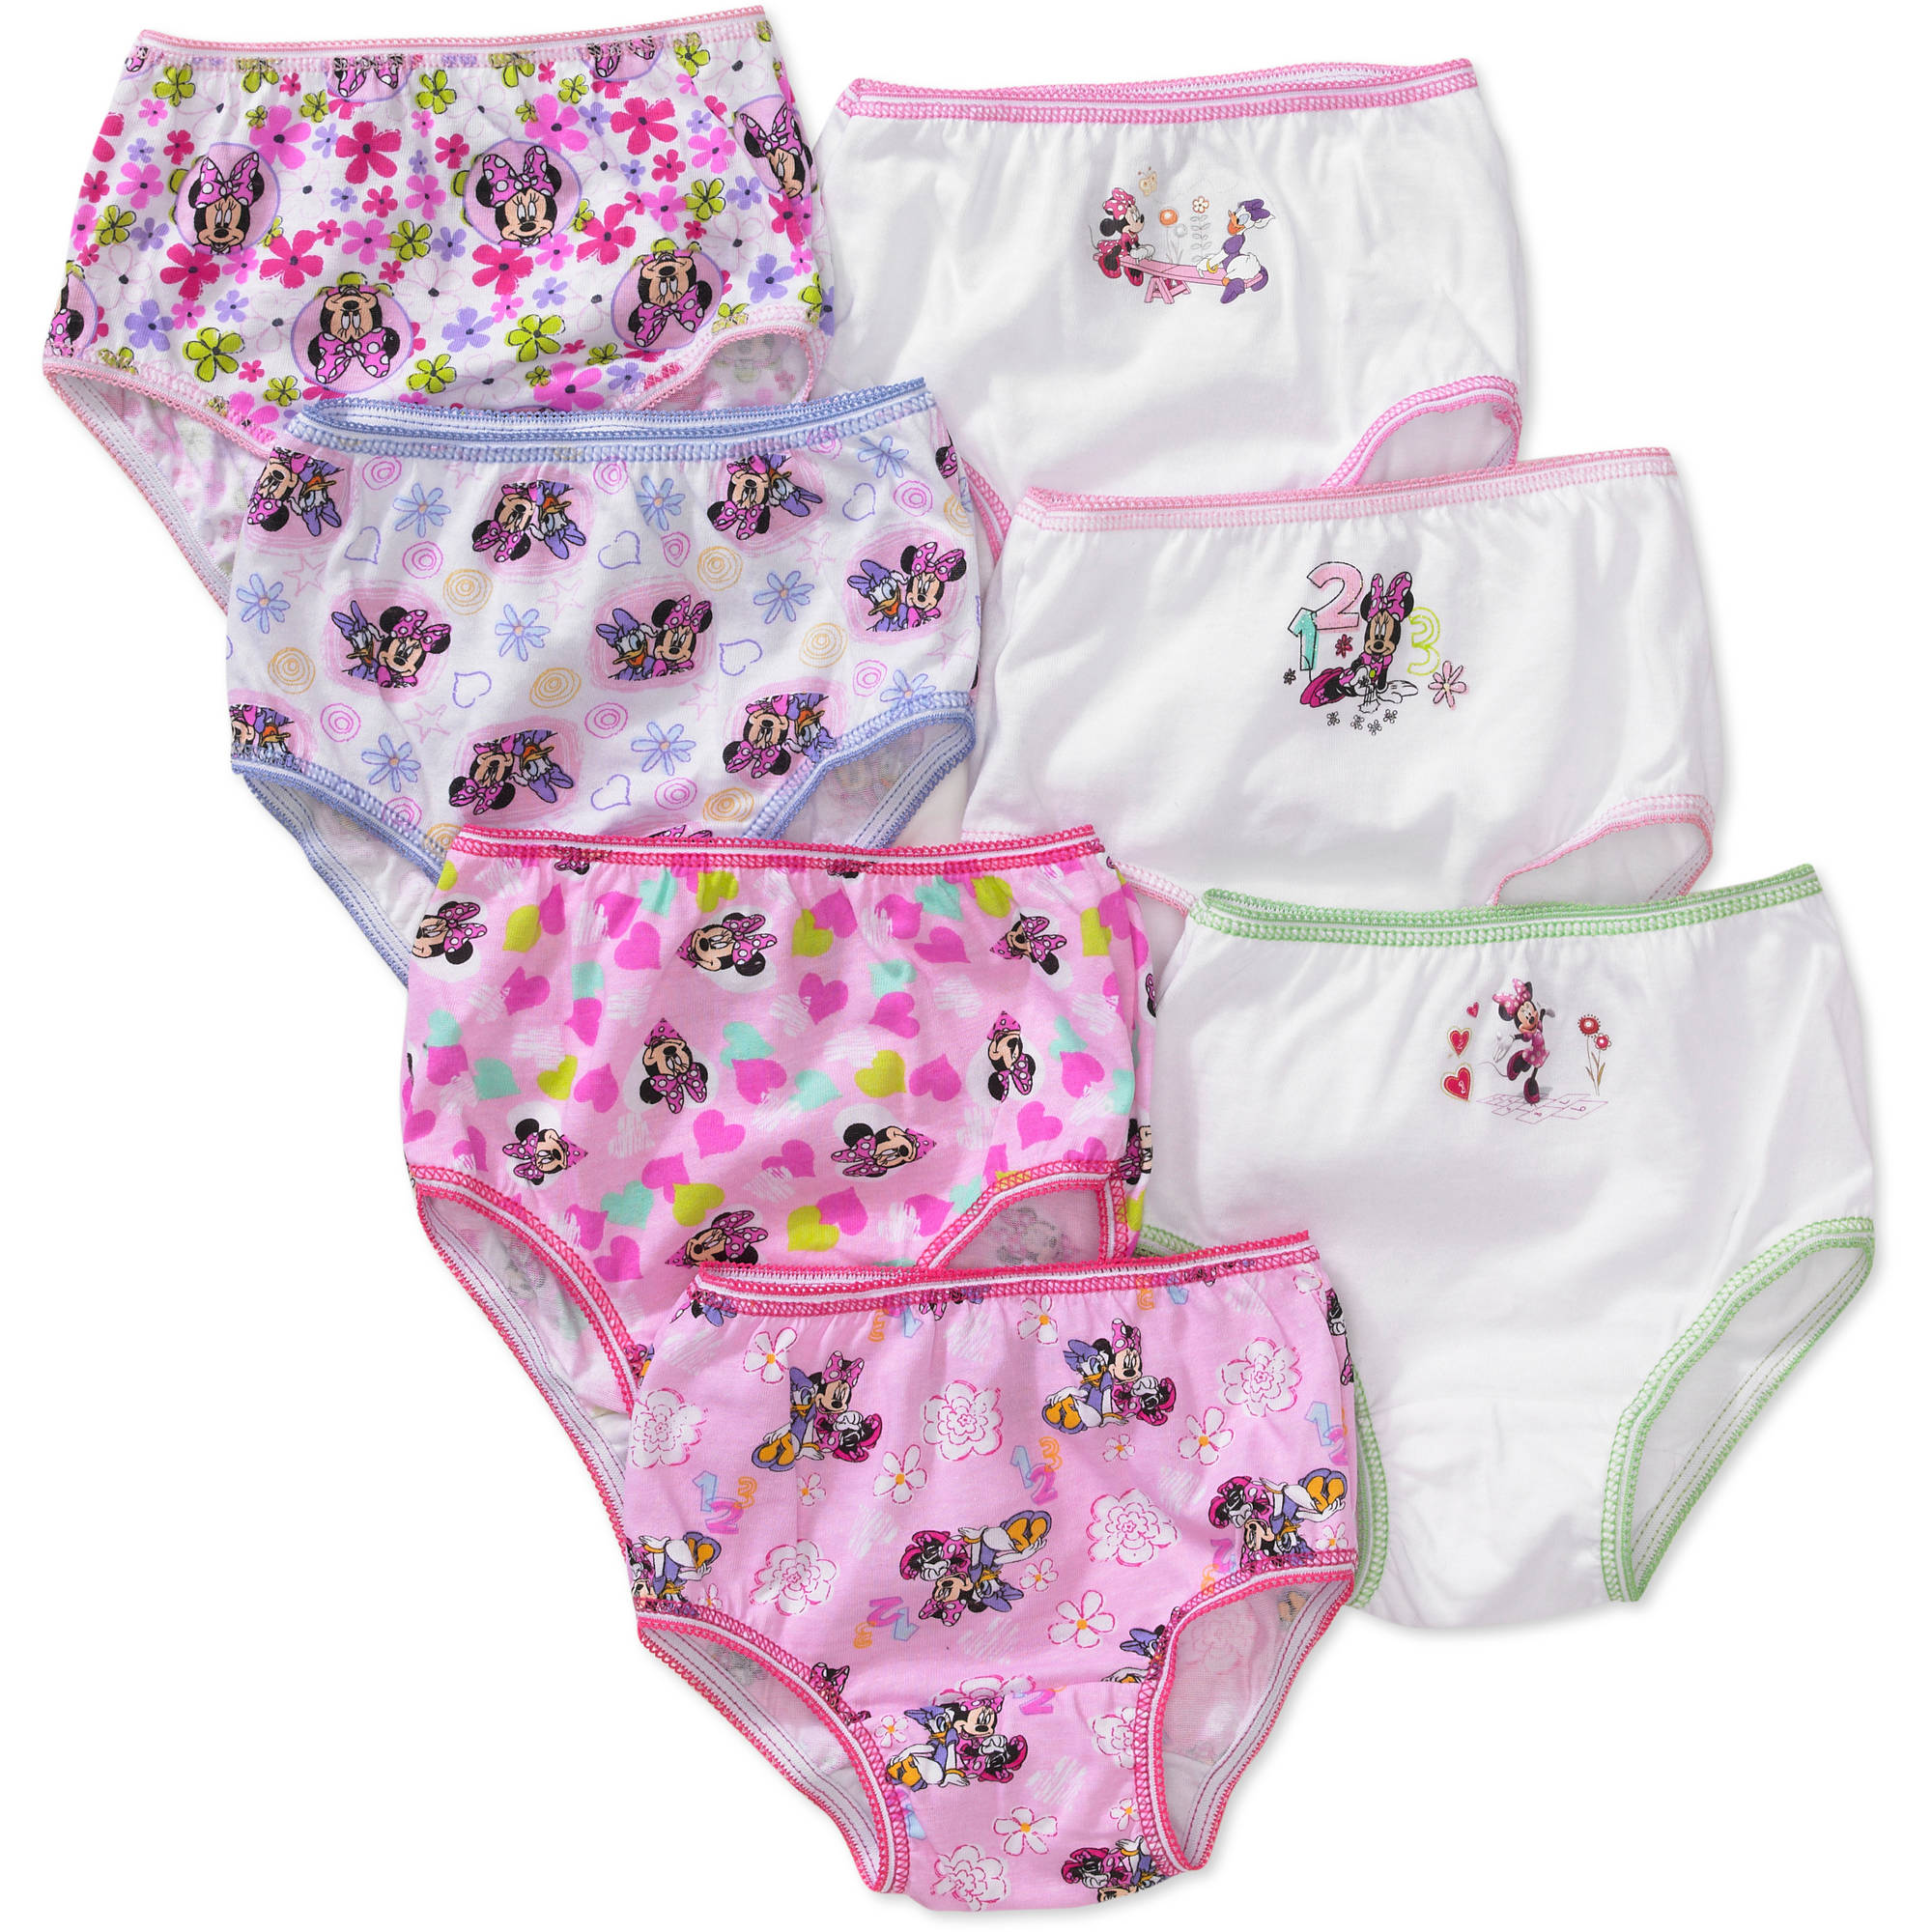 Disney Toddler Girls' Minnie Mouse Underwear, 7-Pack